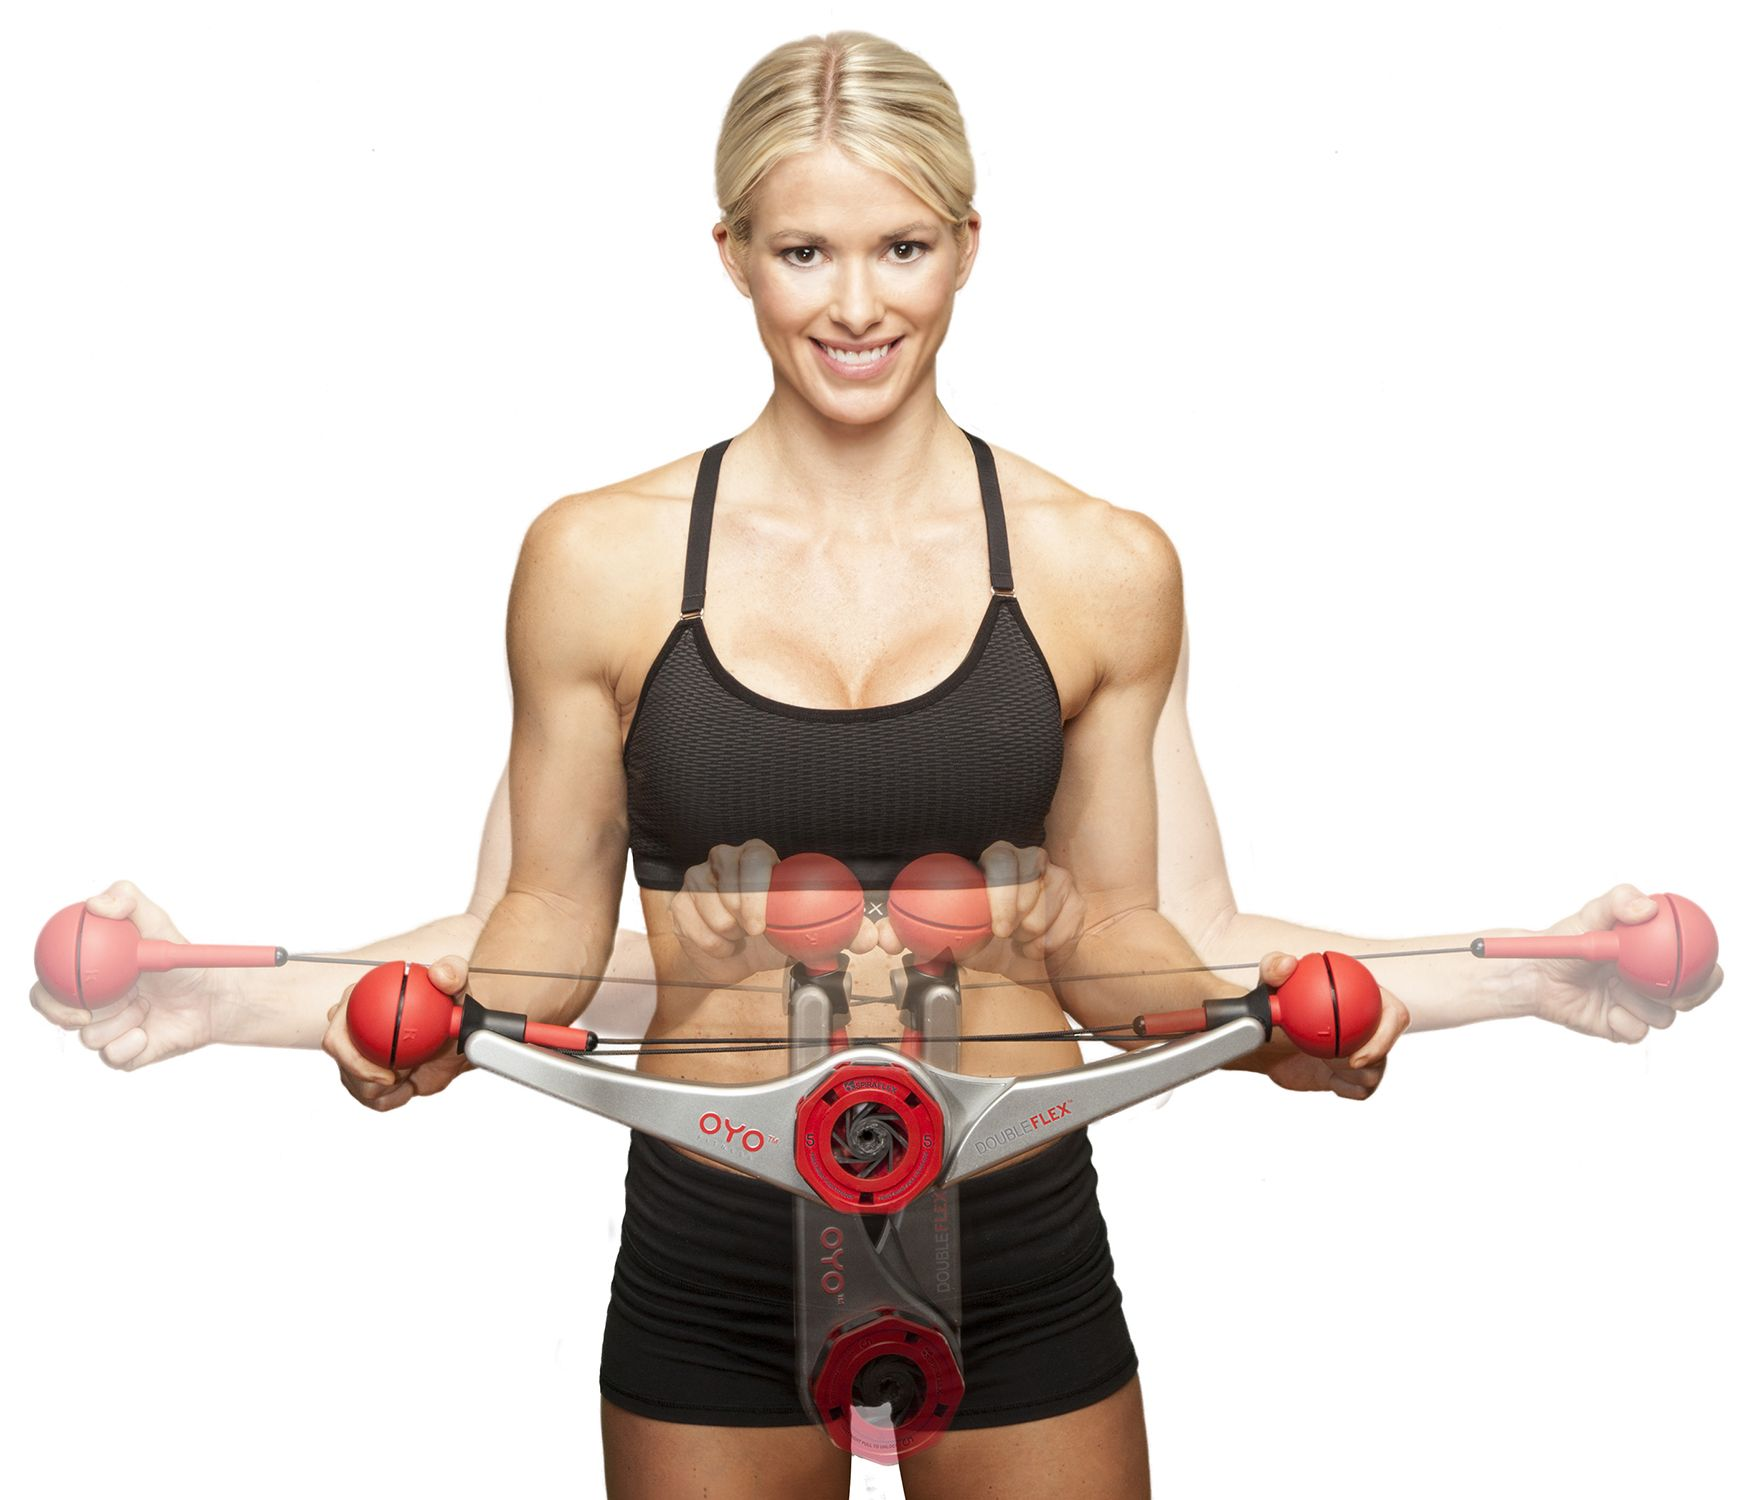 Oyo fitness announces launch of doubleflex portable gym on qvc